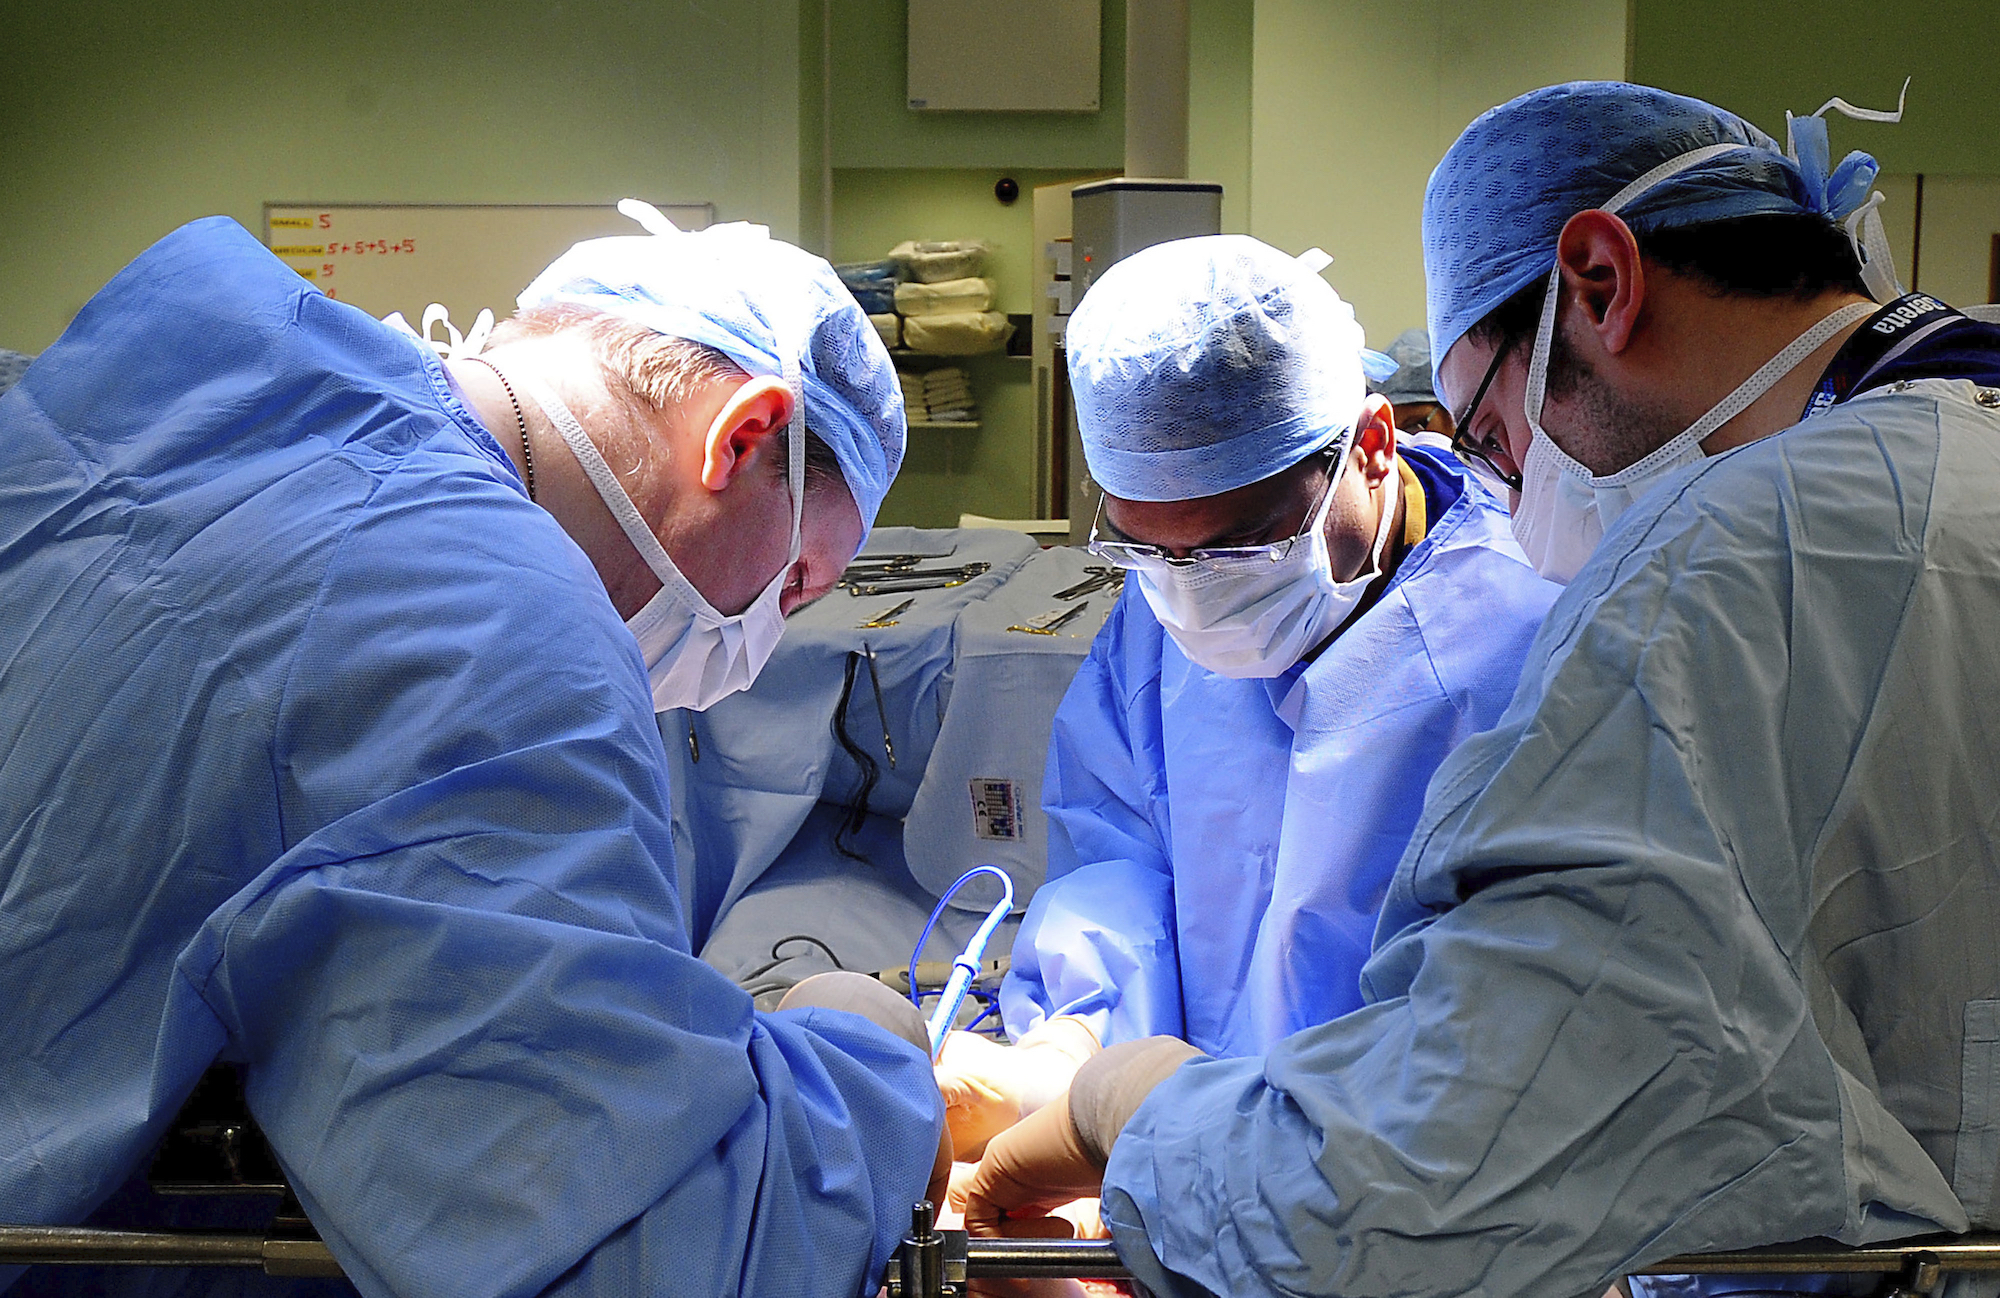 Weight loss surgery being performed on July 4, 2011.